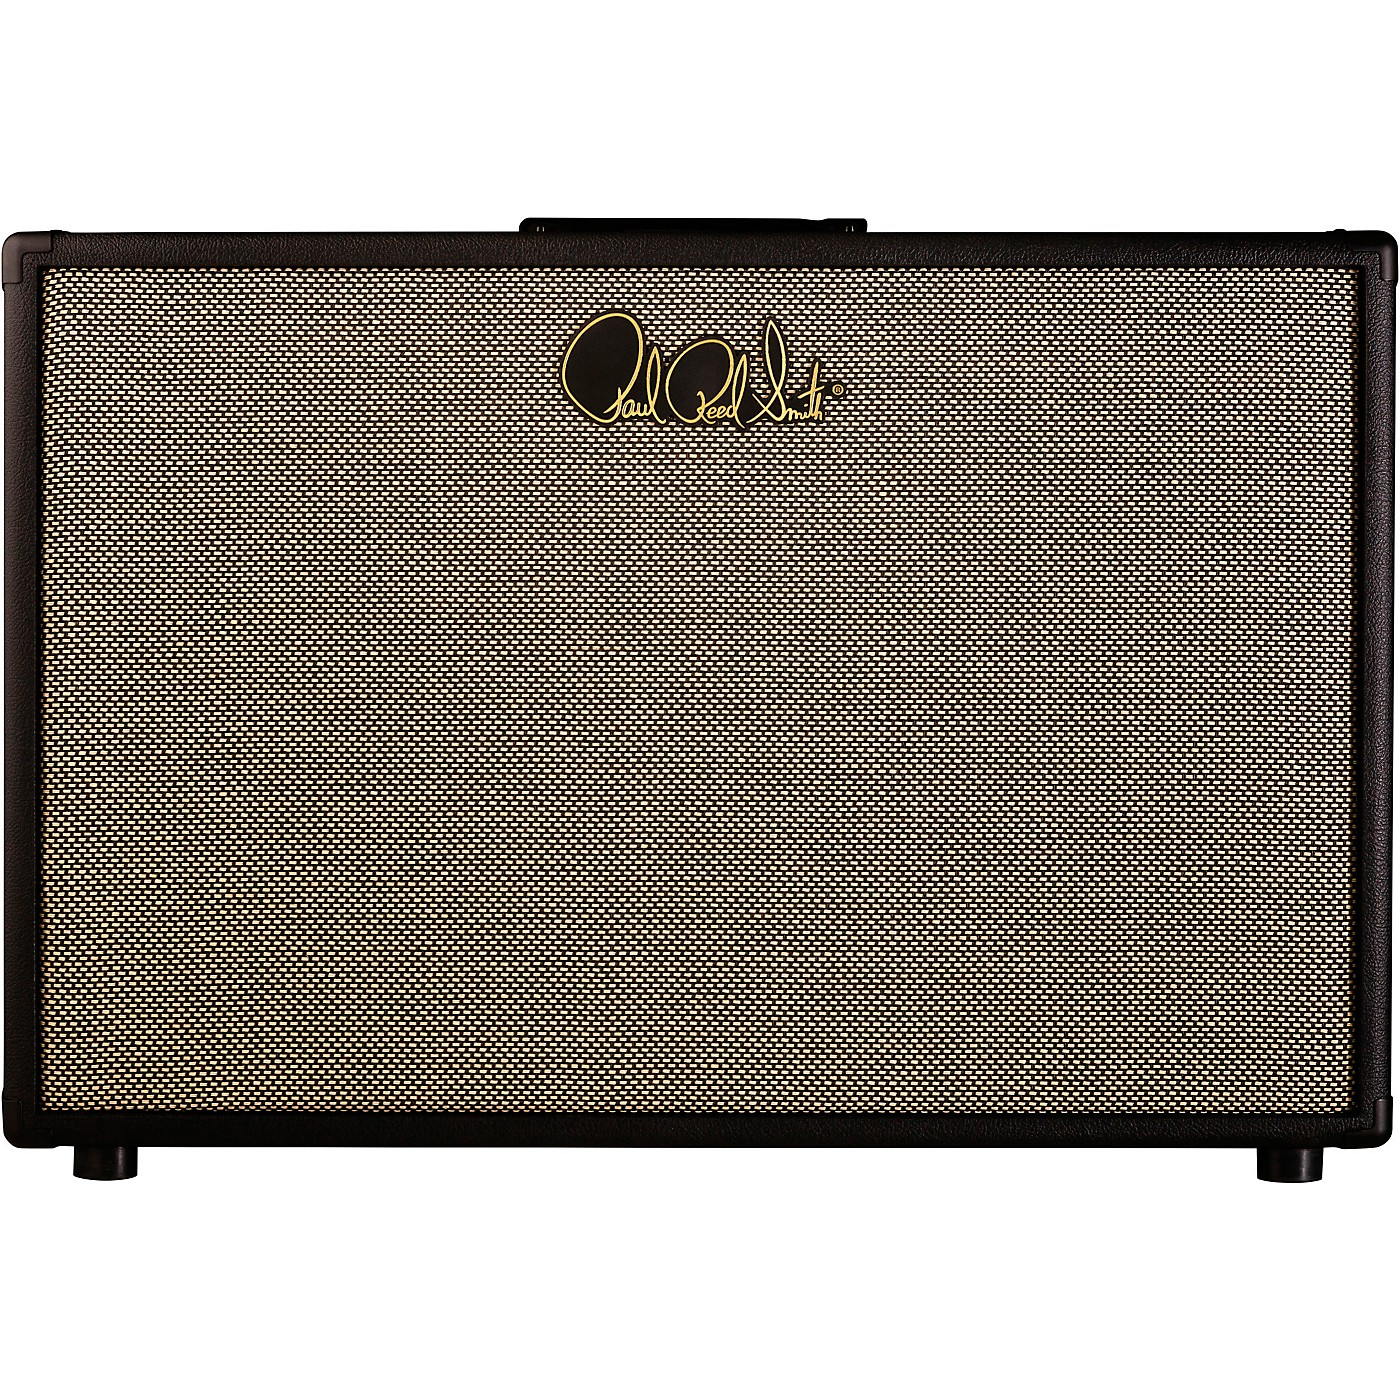 PRS John Mayer J-MOD Stealth 130W 2X12 Guitar Amplifier Speaker Cabinet thumbnail